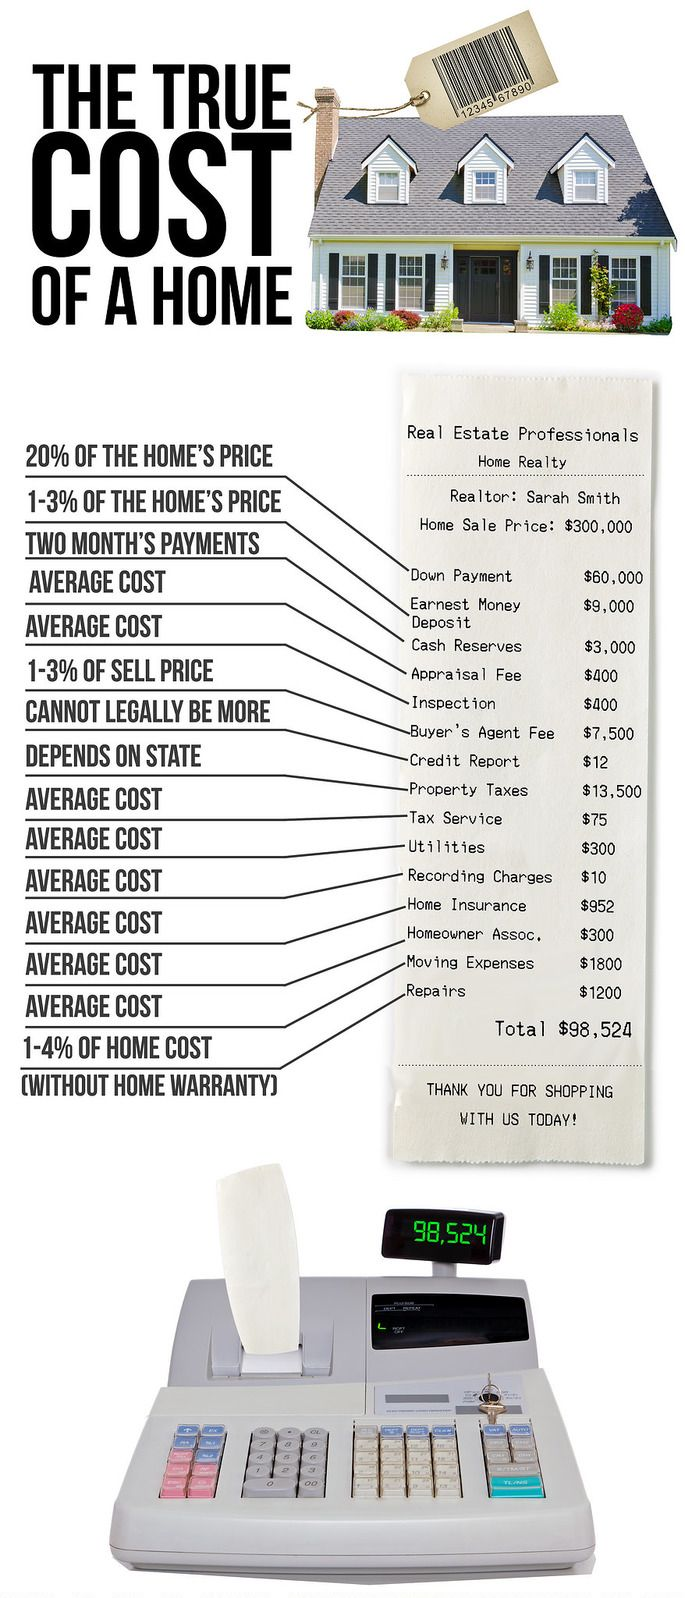 True cost of a house with the best home warranty company and without